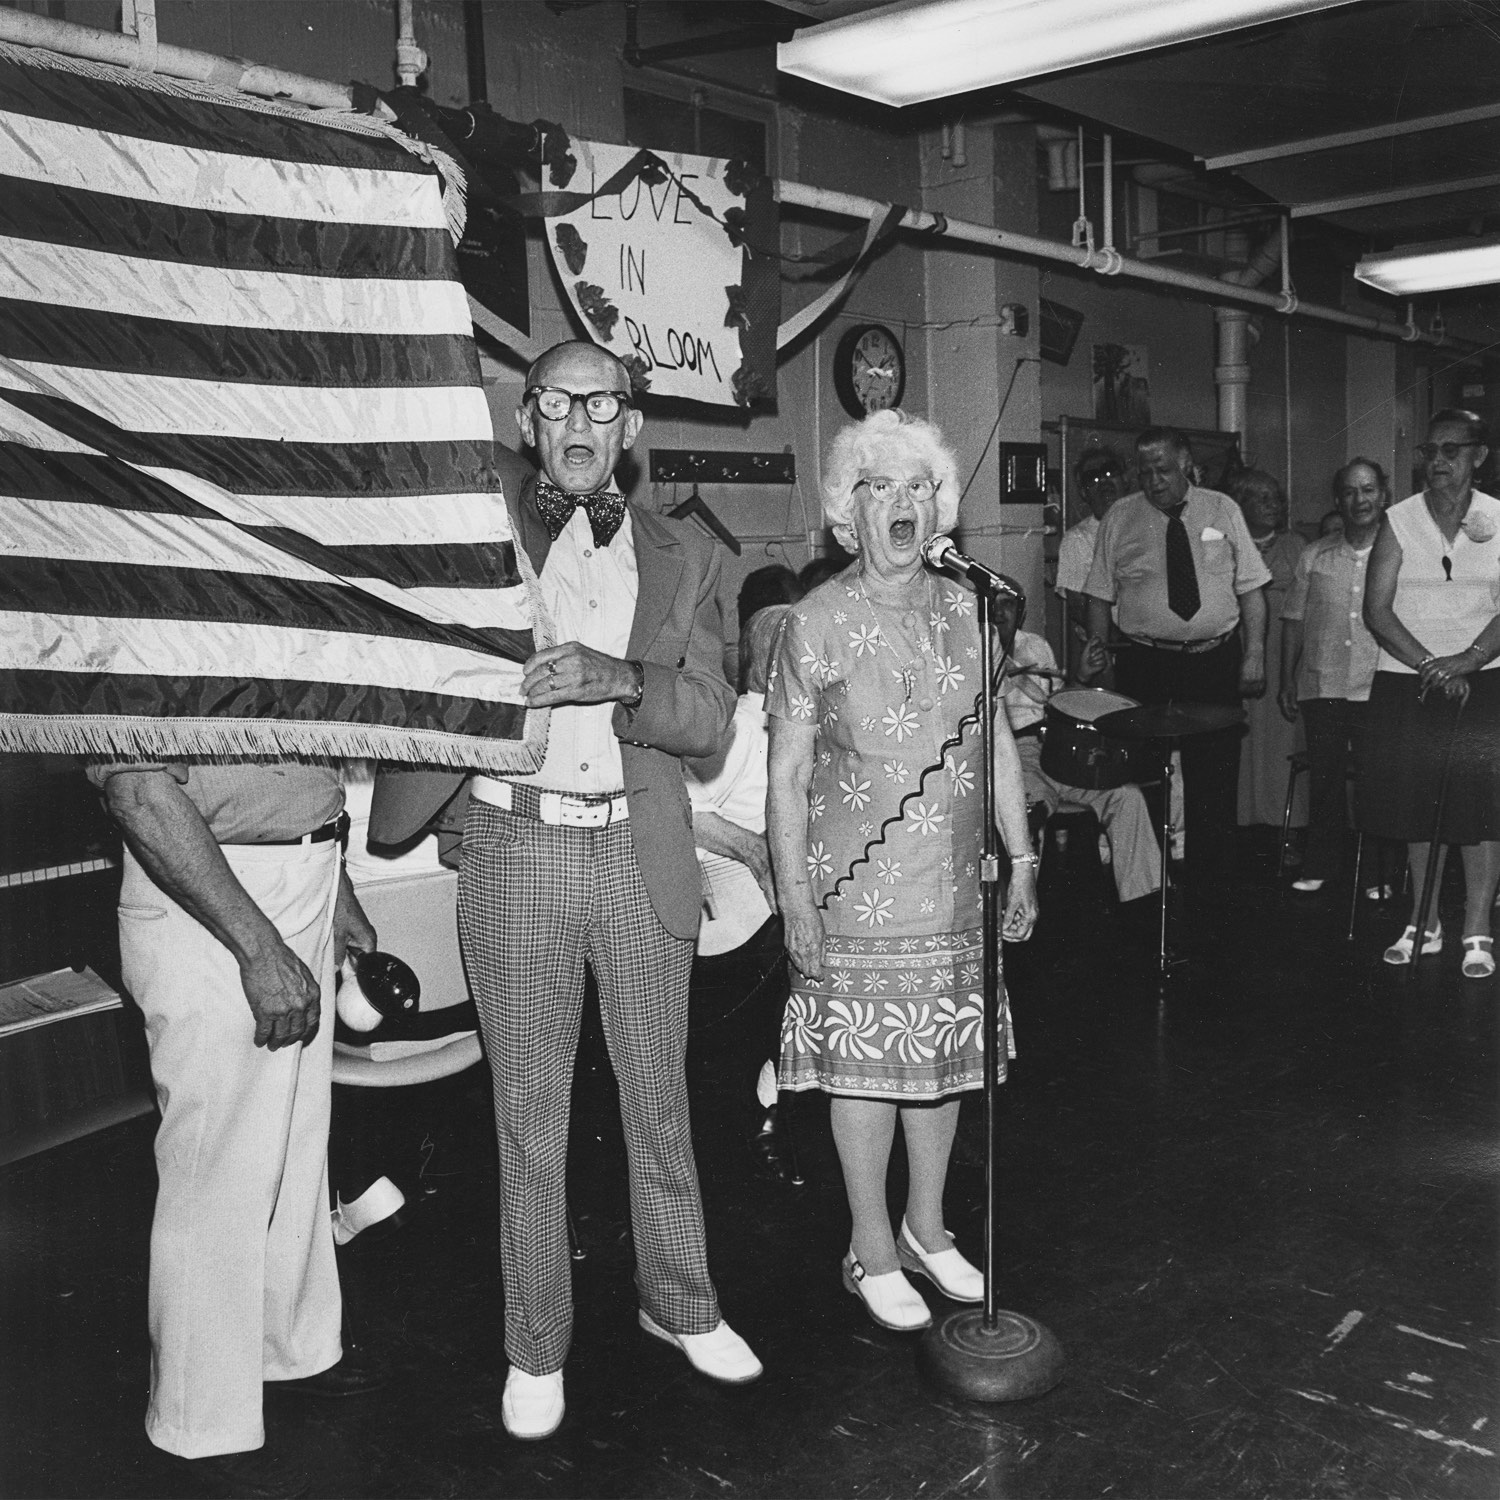 Love in Bloom God Bless America Henry Street Settlement Good Companions Senior Centre 1978